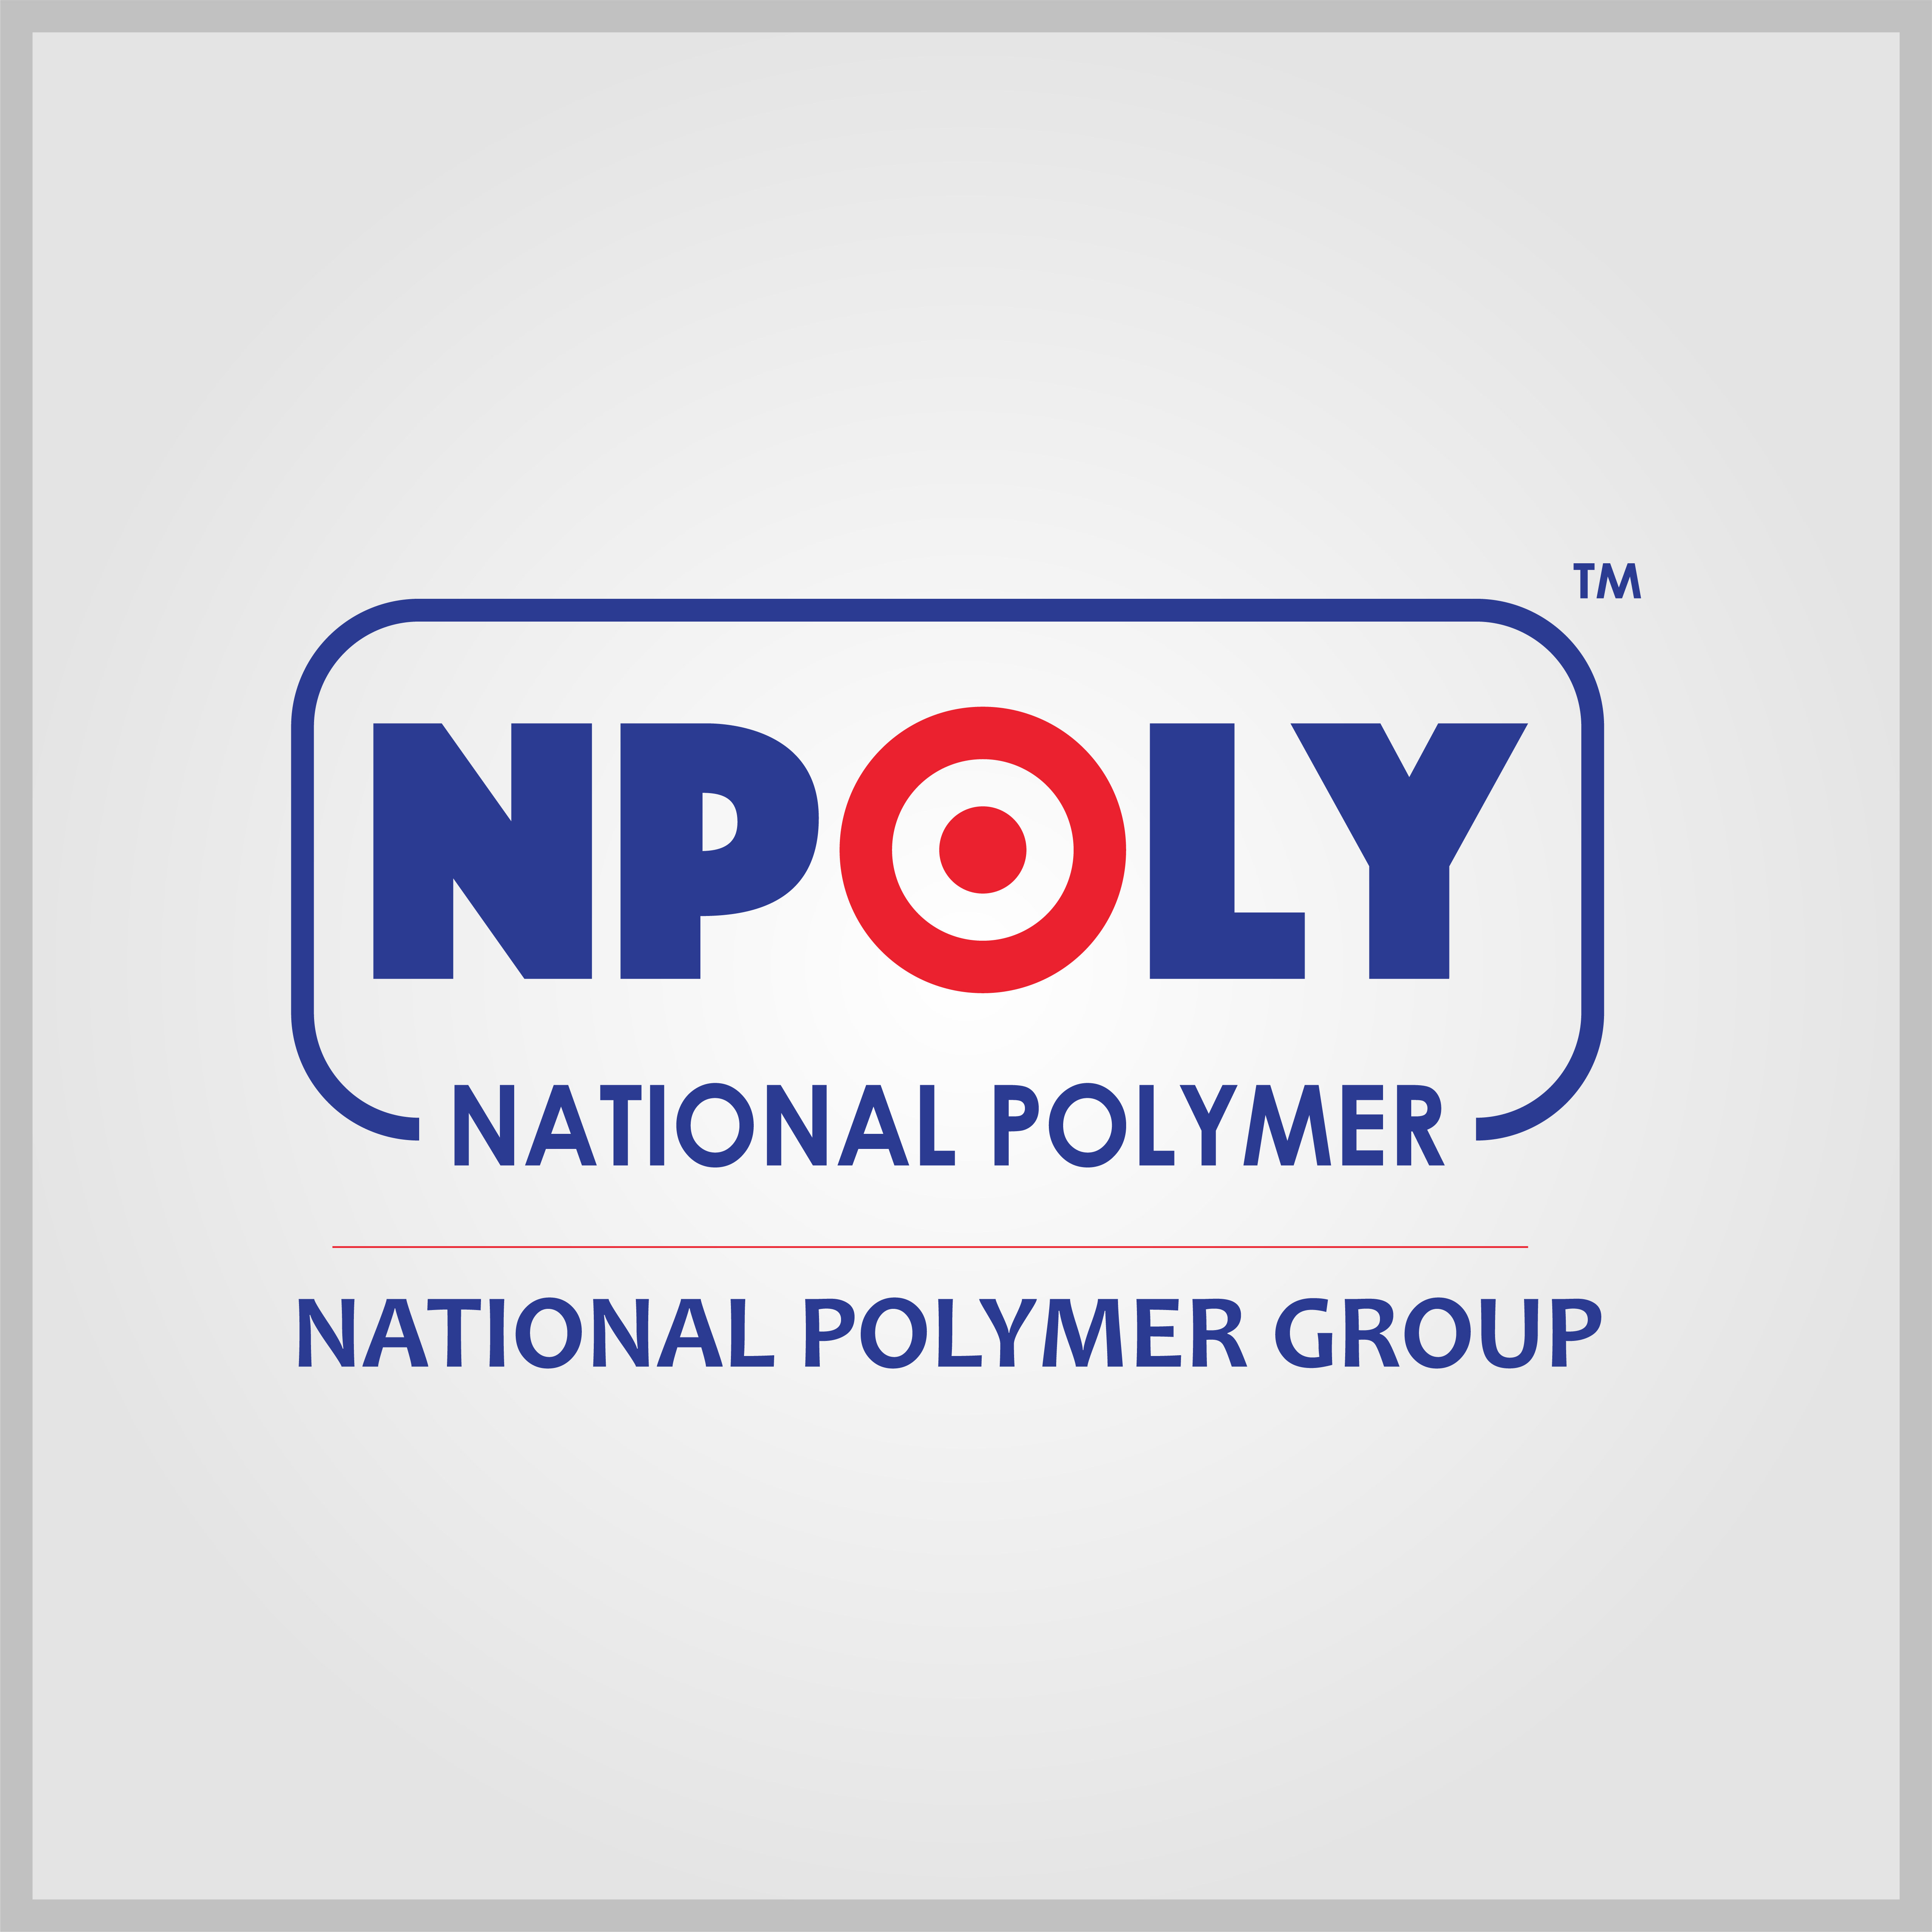 Npoly